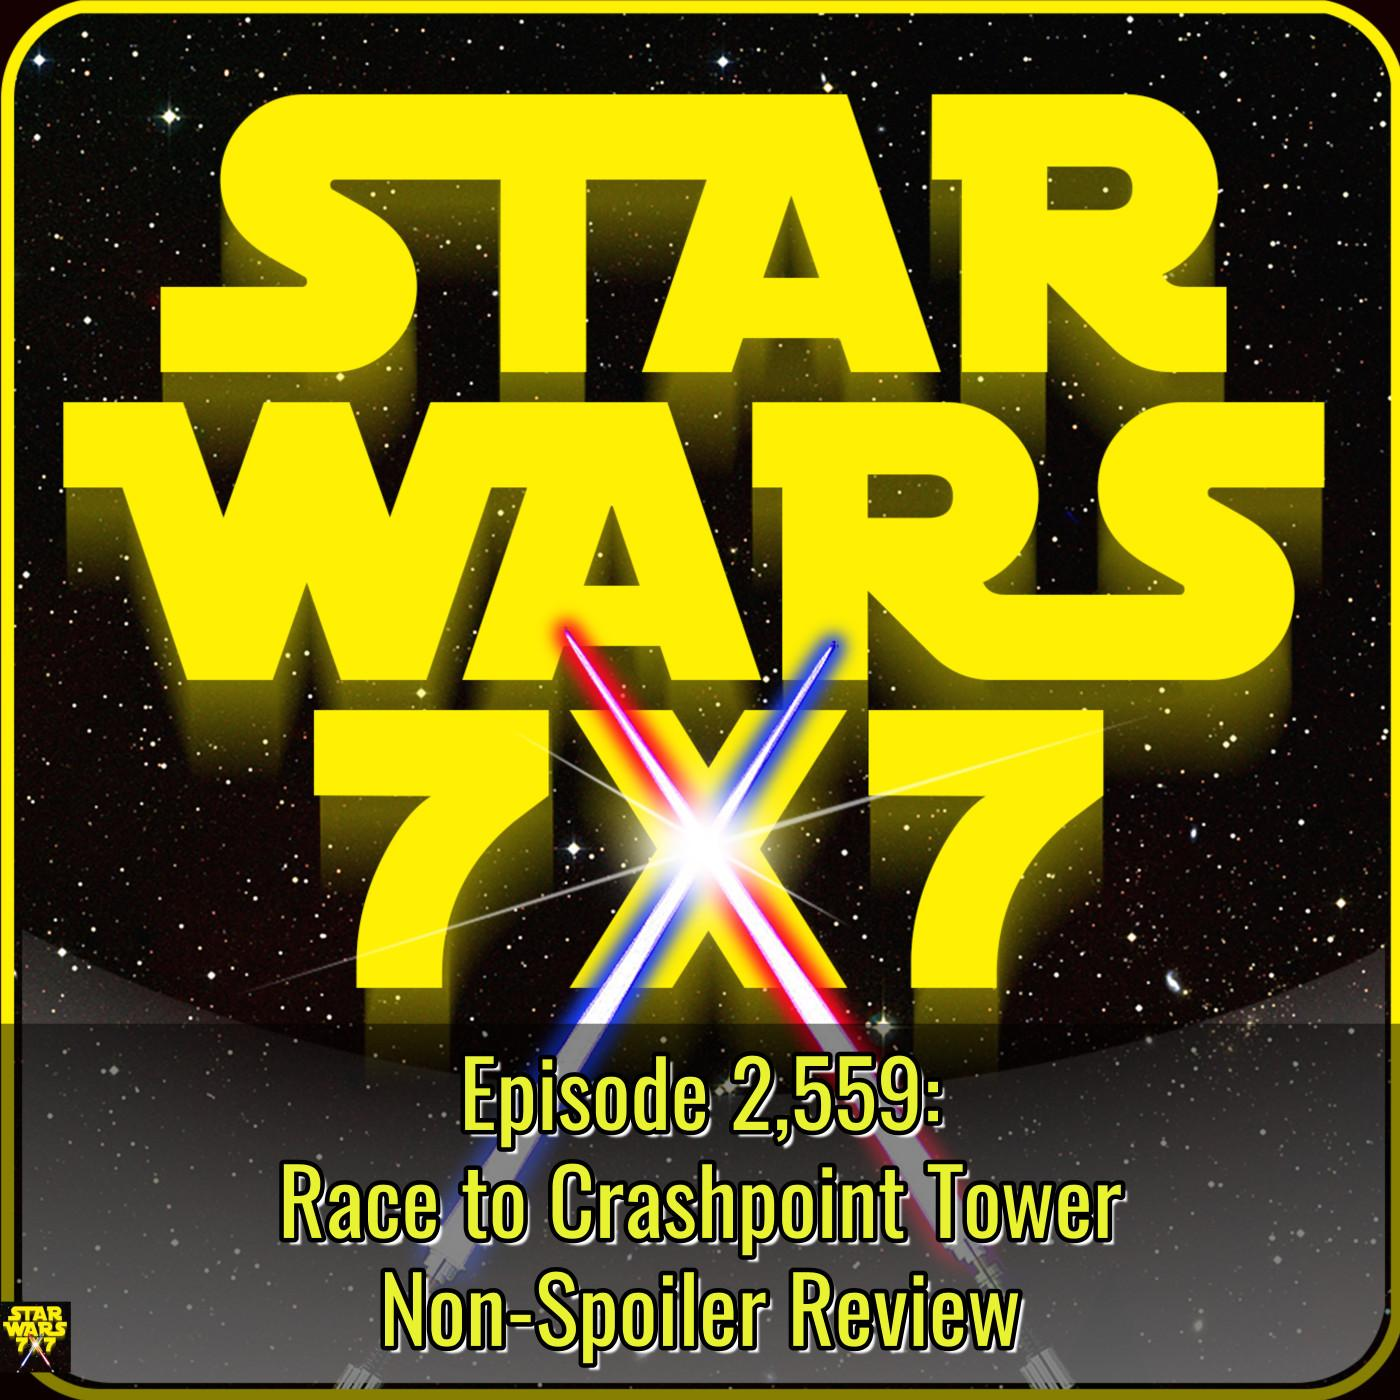 2,559. Star Wars: Race to Crashpoint Tower Non-Spoiler Review